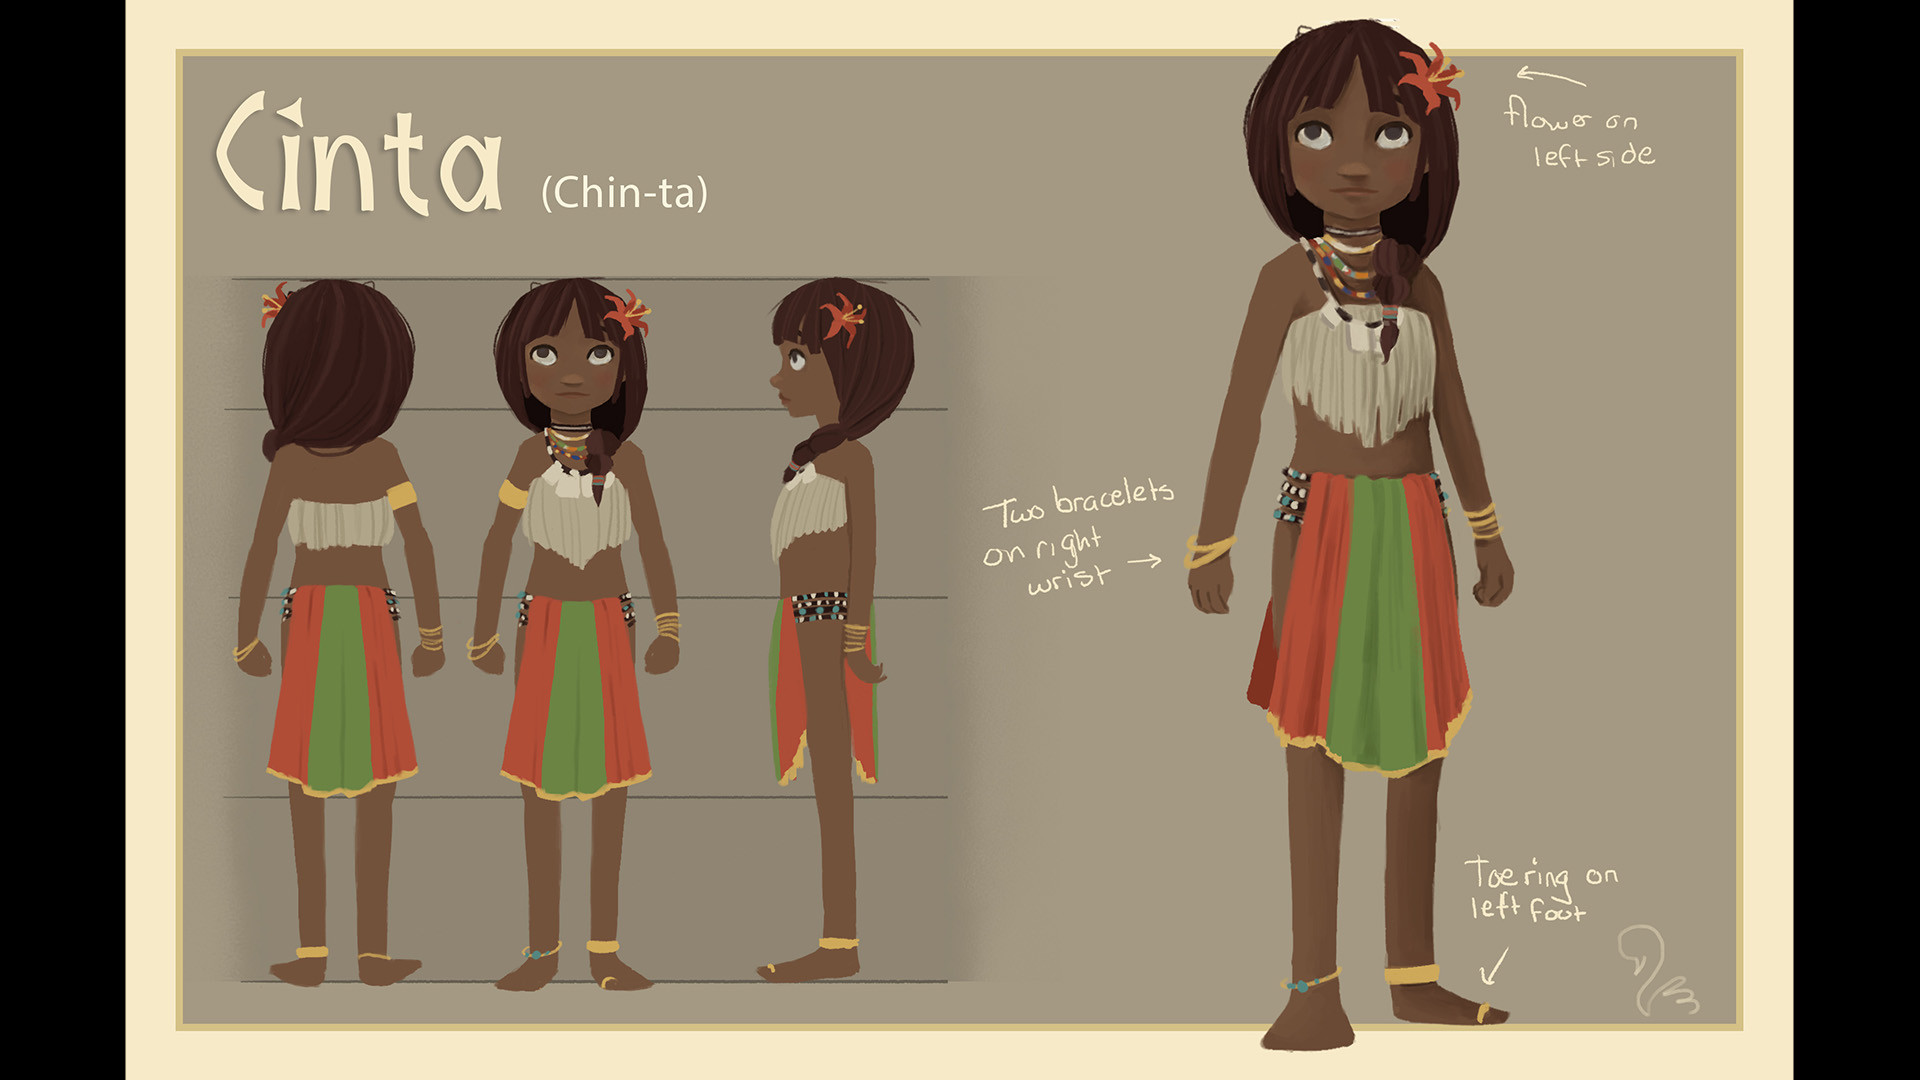 Victoria march marchv cinta charactersheet rs